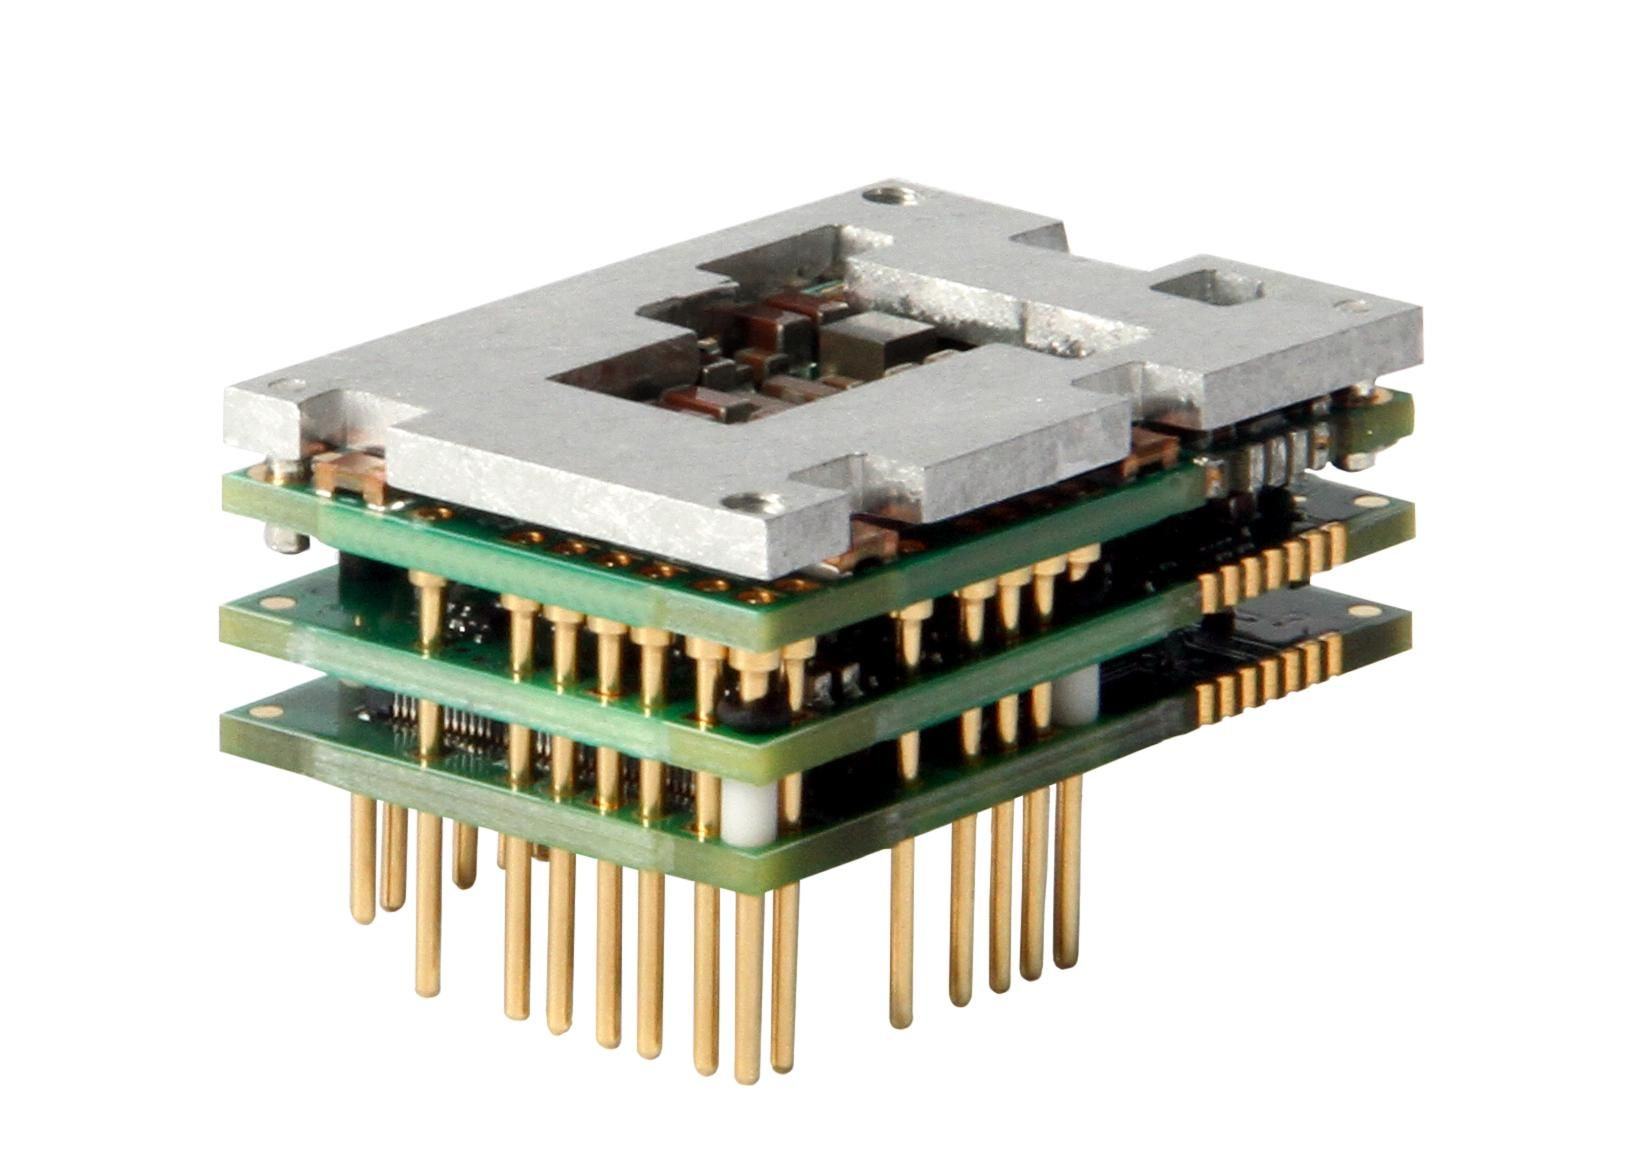 Digital Servo Drive FlexPro™ from ADVANCED Motion Controls USA: Micro-Sized and High-power Density